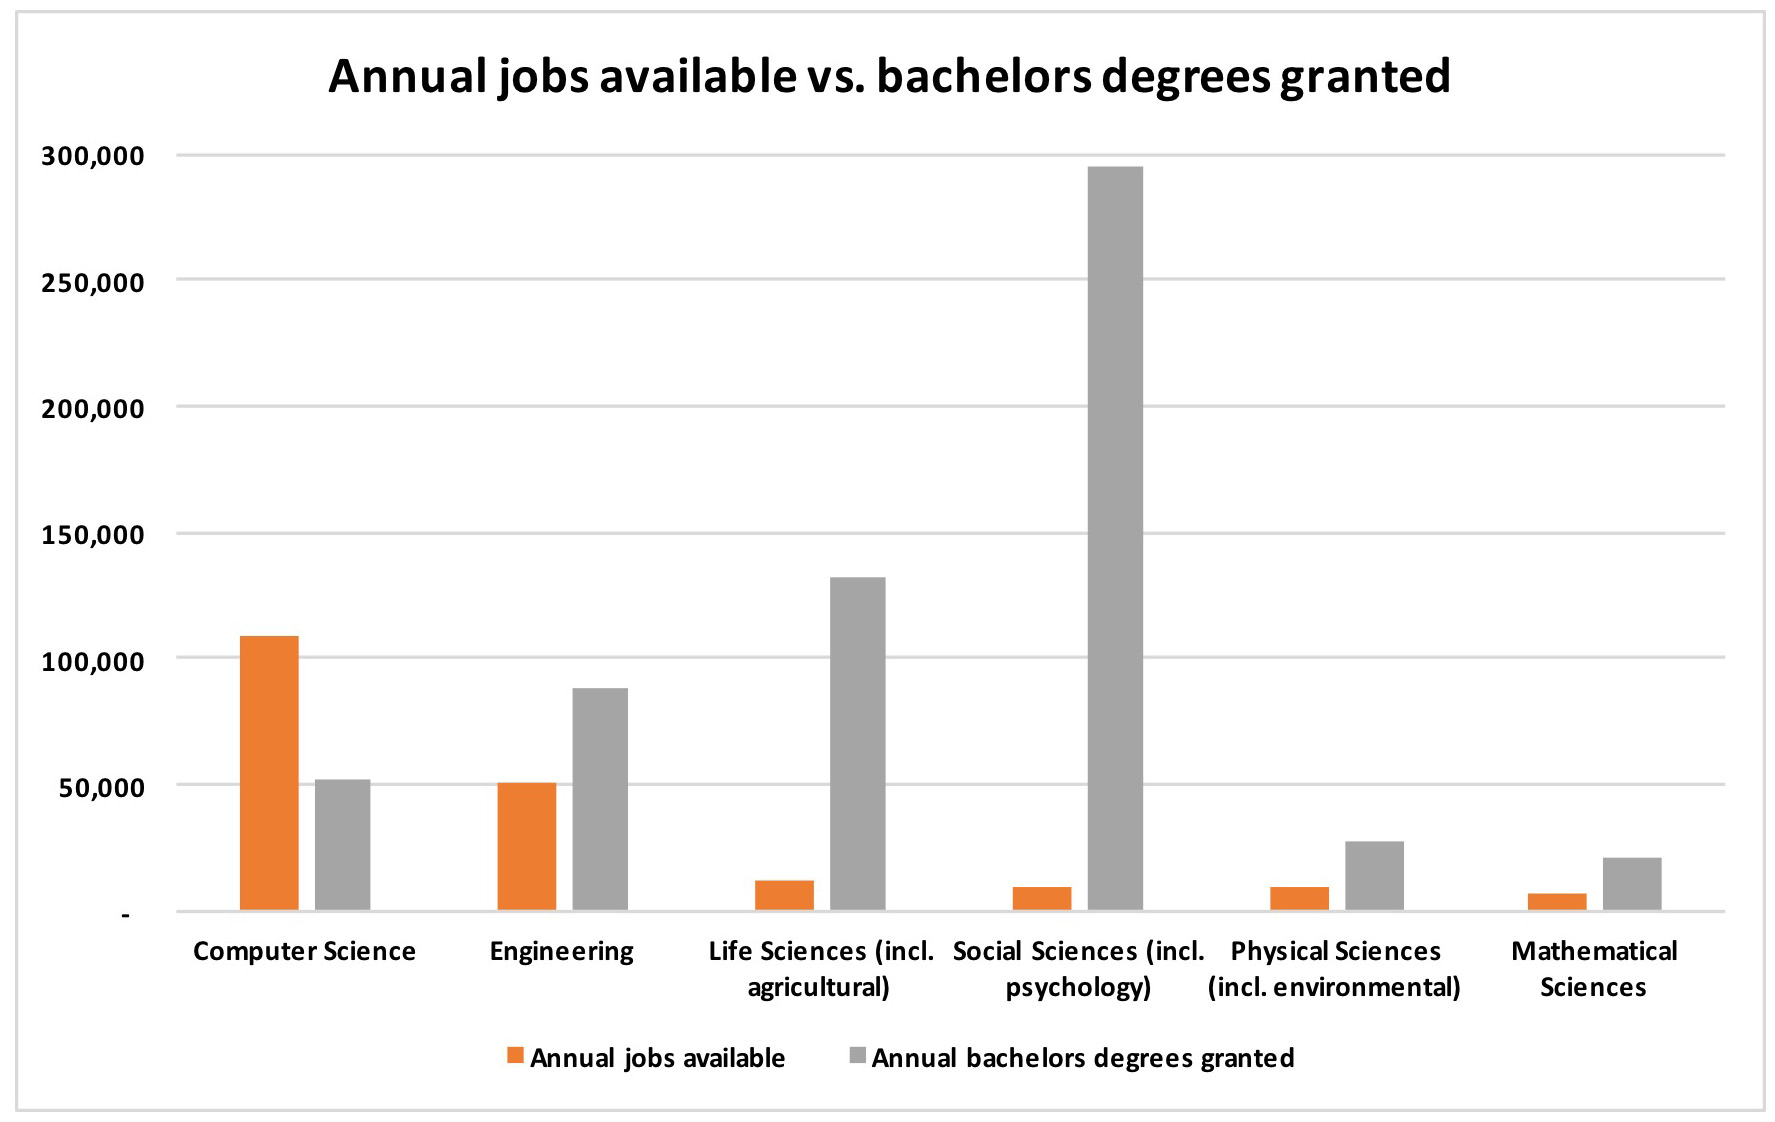 Graph of Annual Jobs Available vs. Bachelors Degrees Granted